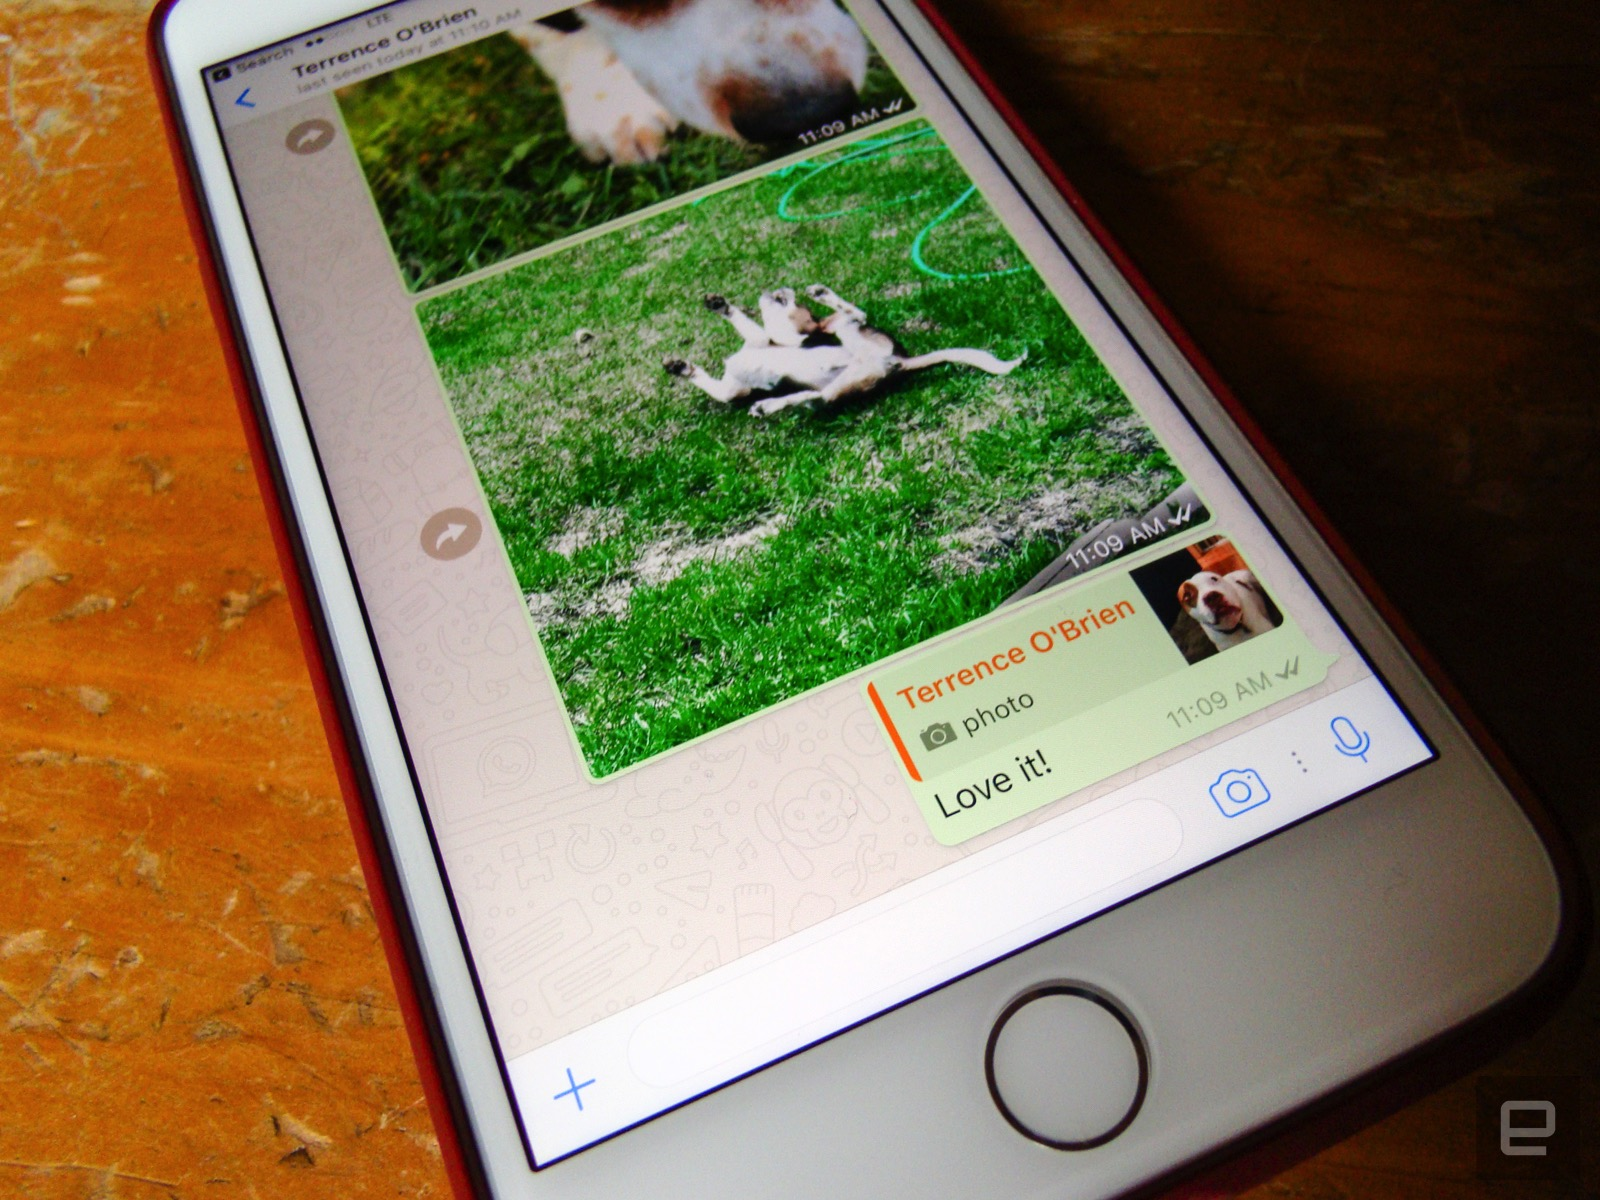 WhatsApp adds photo filters and albums to make chats more visual